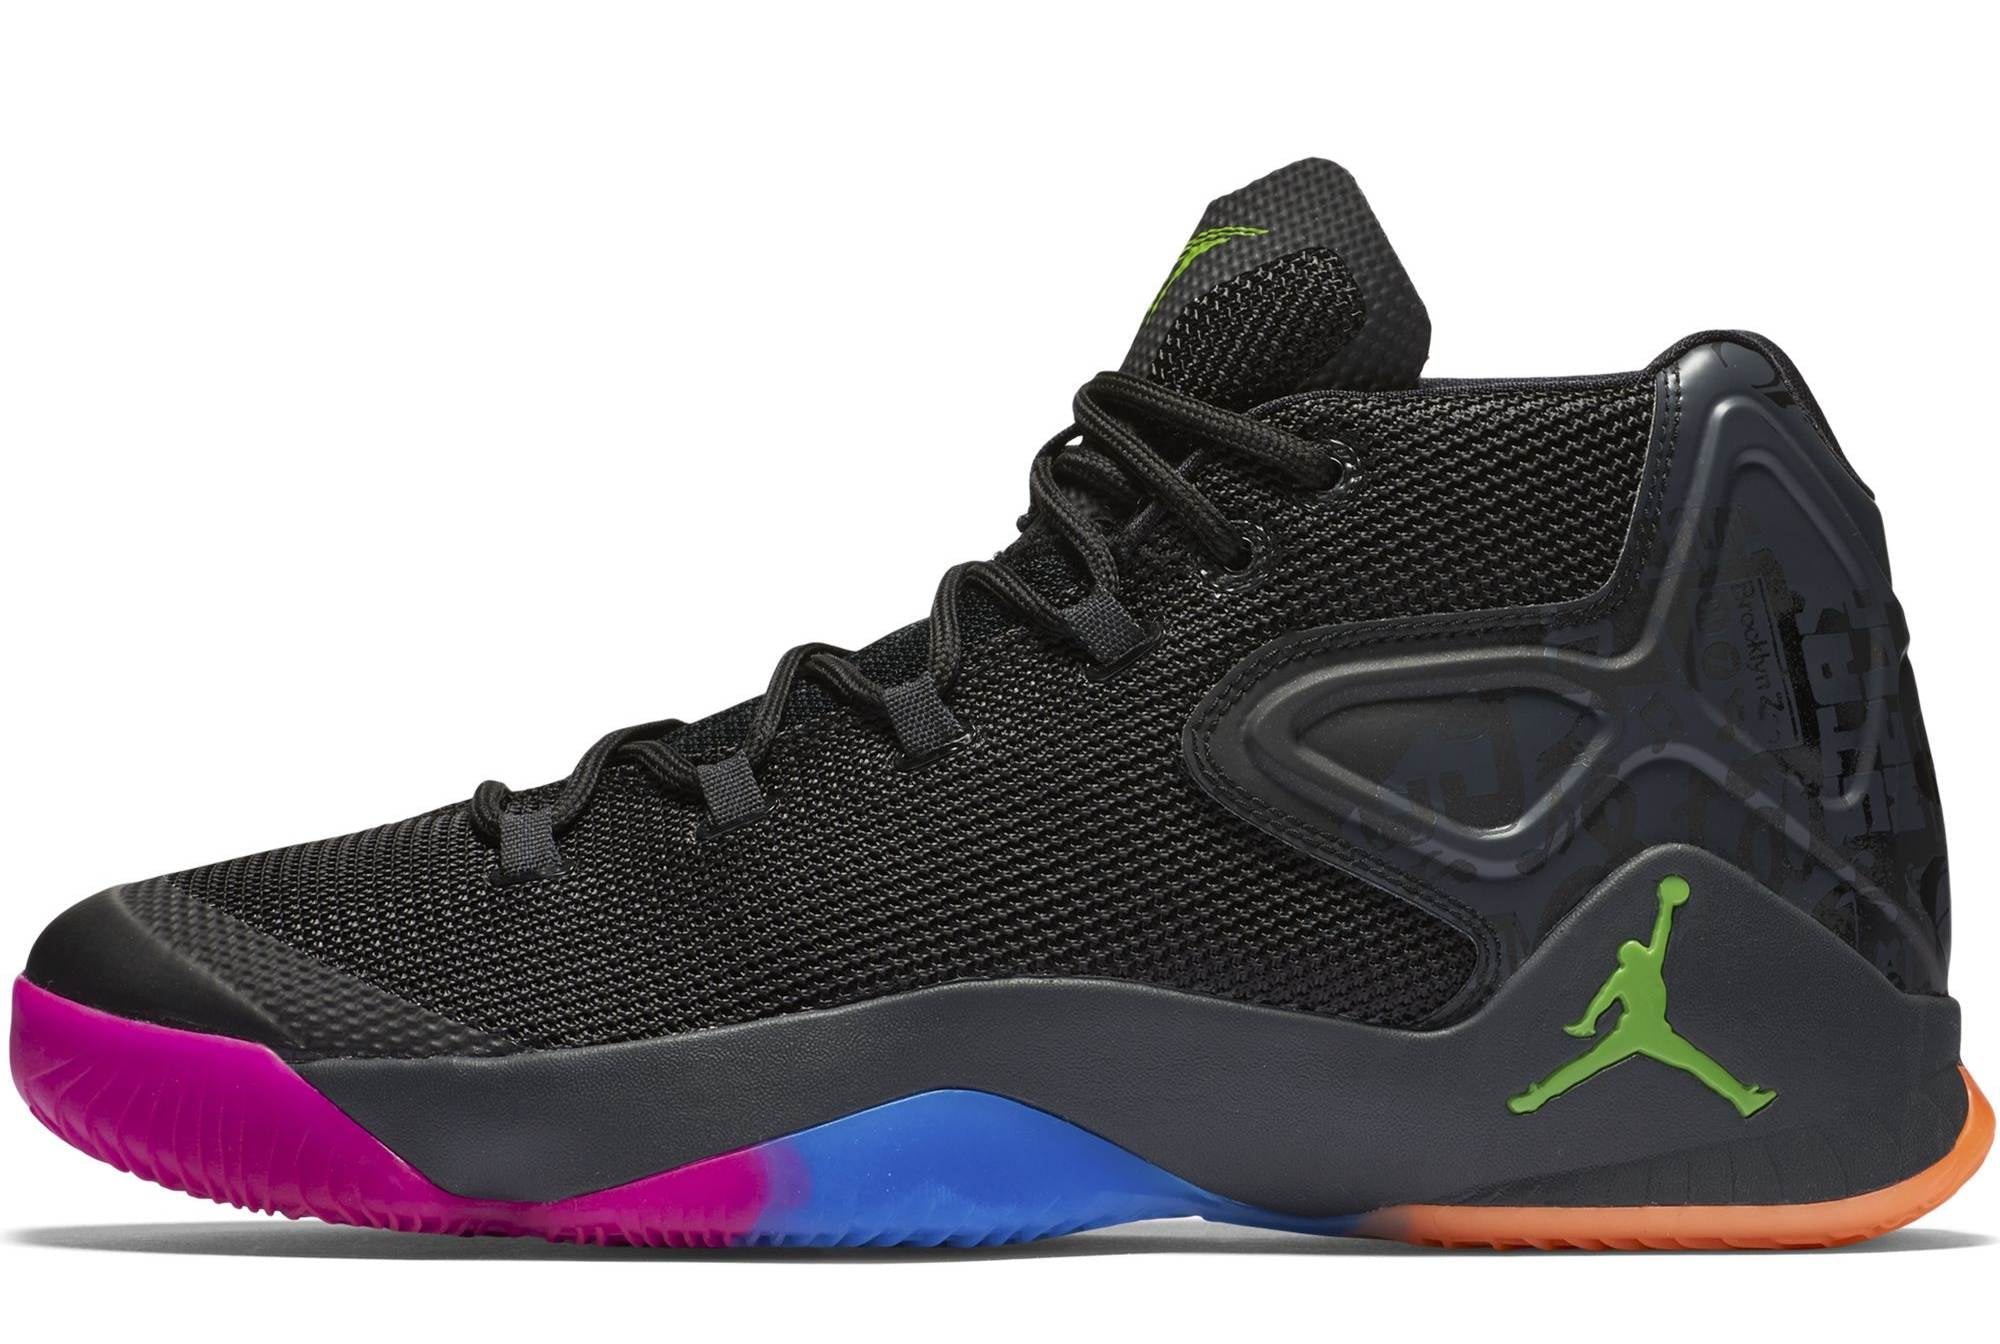 ike Jordan Melo M12 Basketball Boot/Shoe